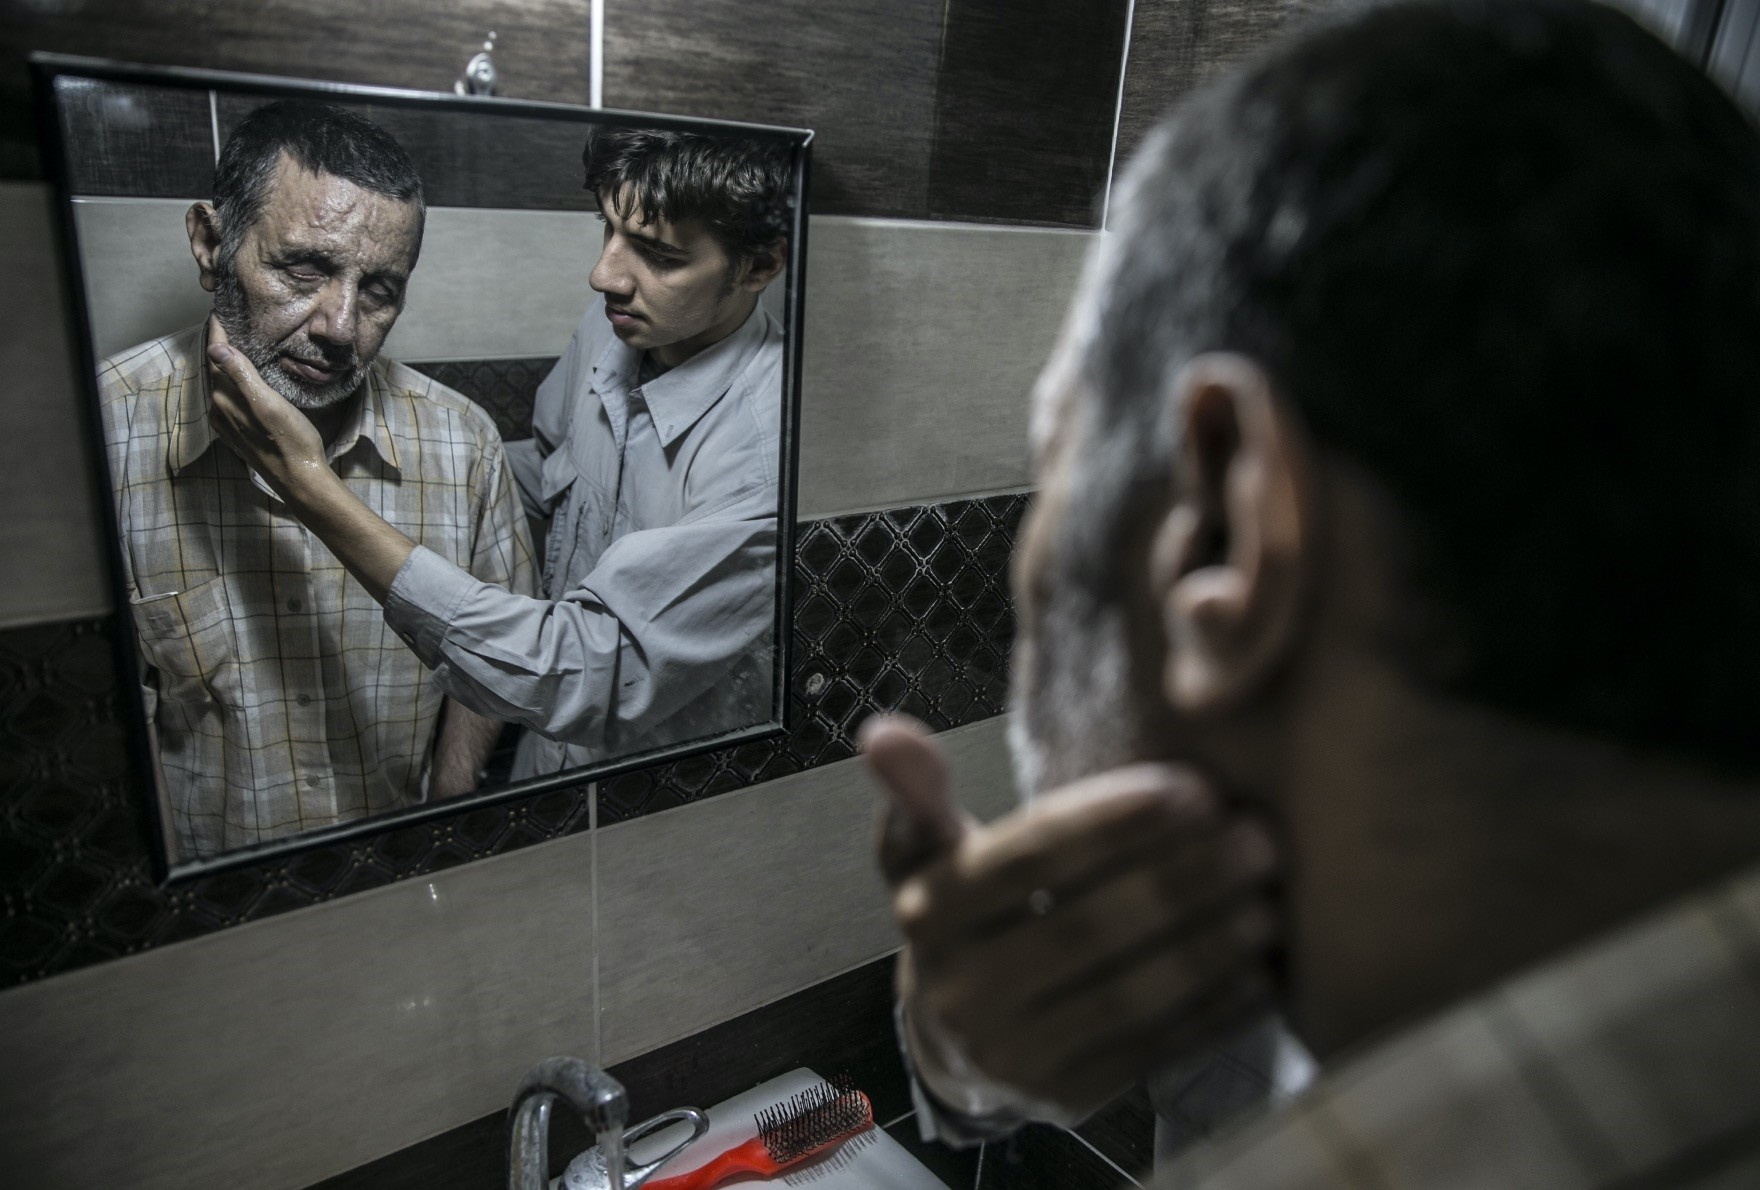 Muhammed Bessam Al Meydani who lost his eyesight during an attack orchestrated by the Assad regime. He continues to his daily routine with the help of his son Kenen Al Meydani.